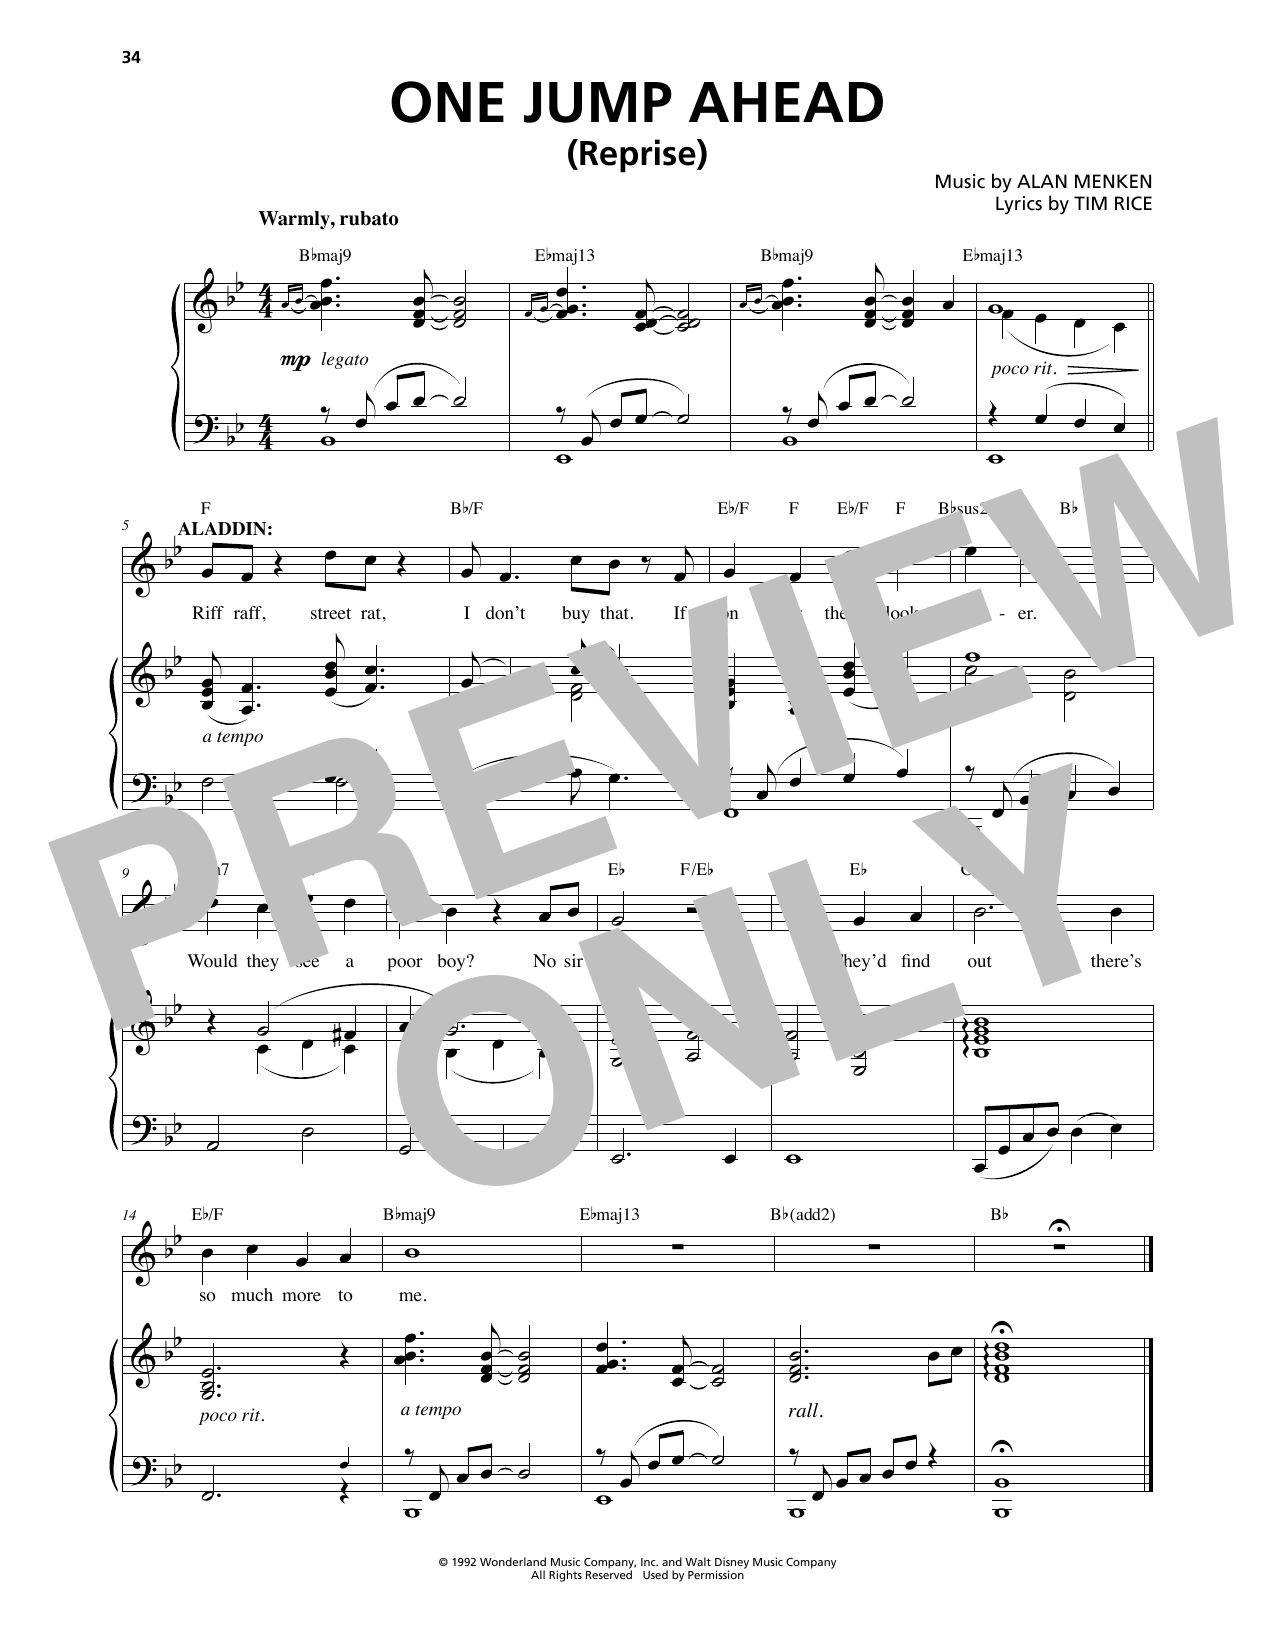 Alan Menken One Jump Ahead (Reprise) (from Aladdin: The Broadway Musical) sheet music notes and chords